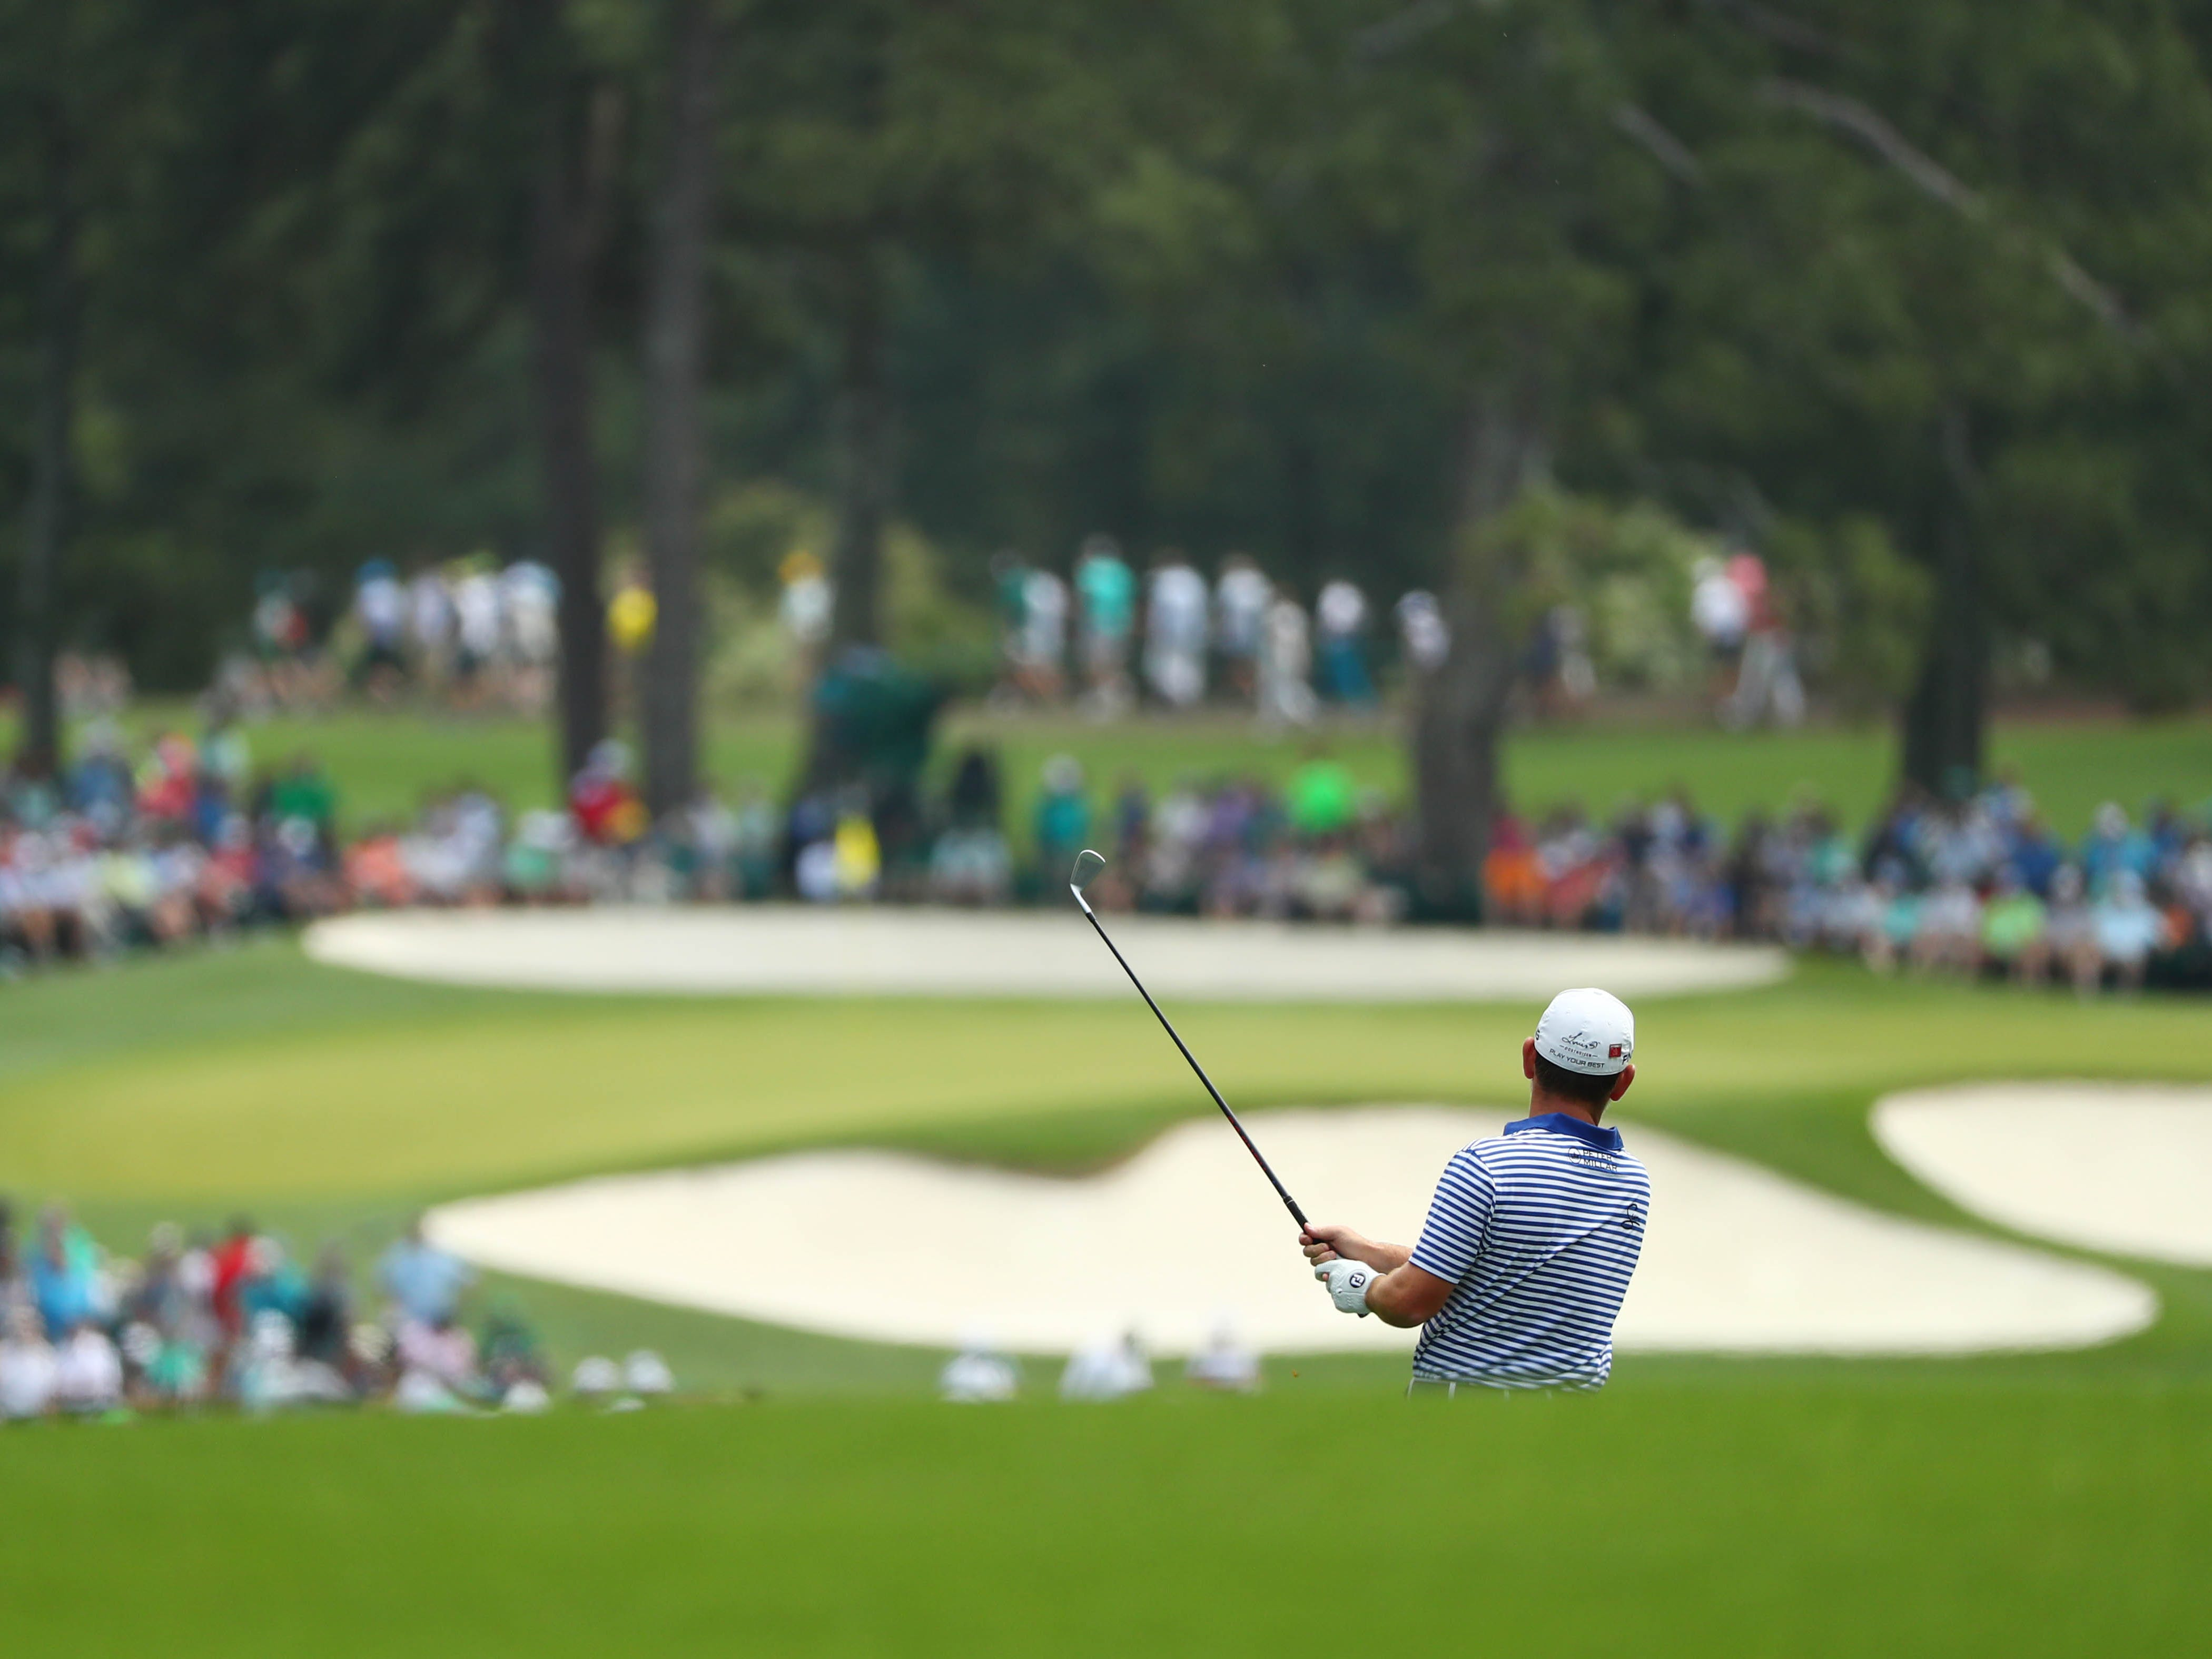 Louis Oosthuizen plays his approach to the second hole during the third round of the Masters.